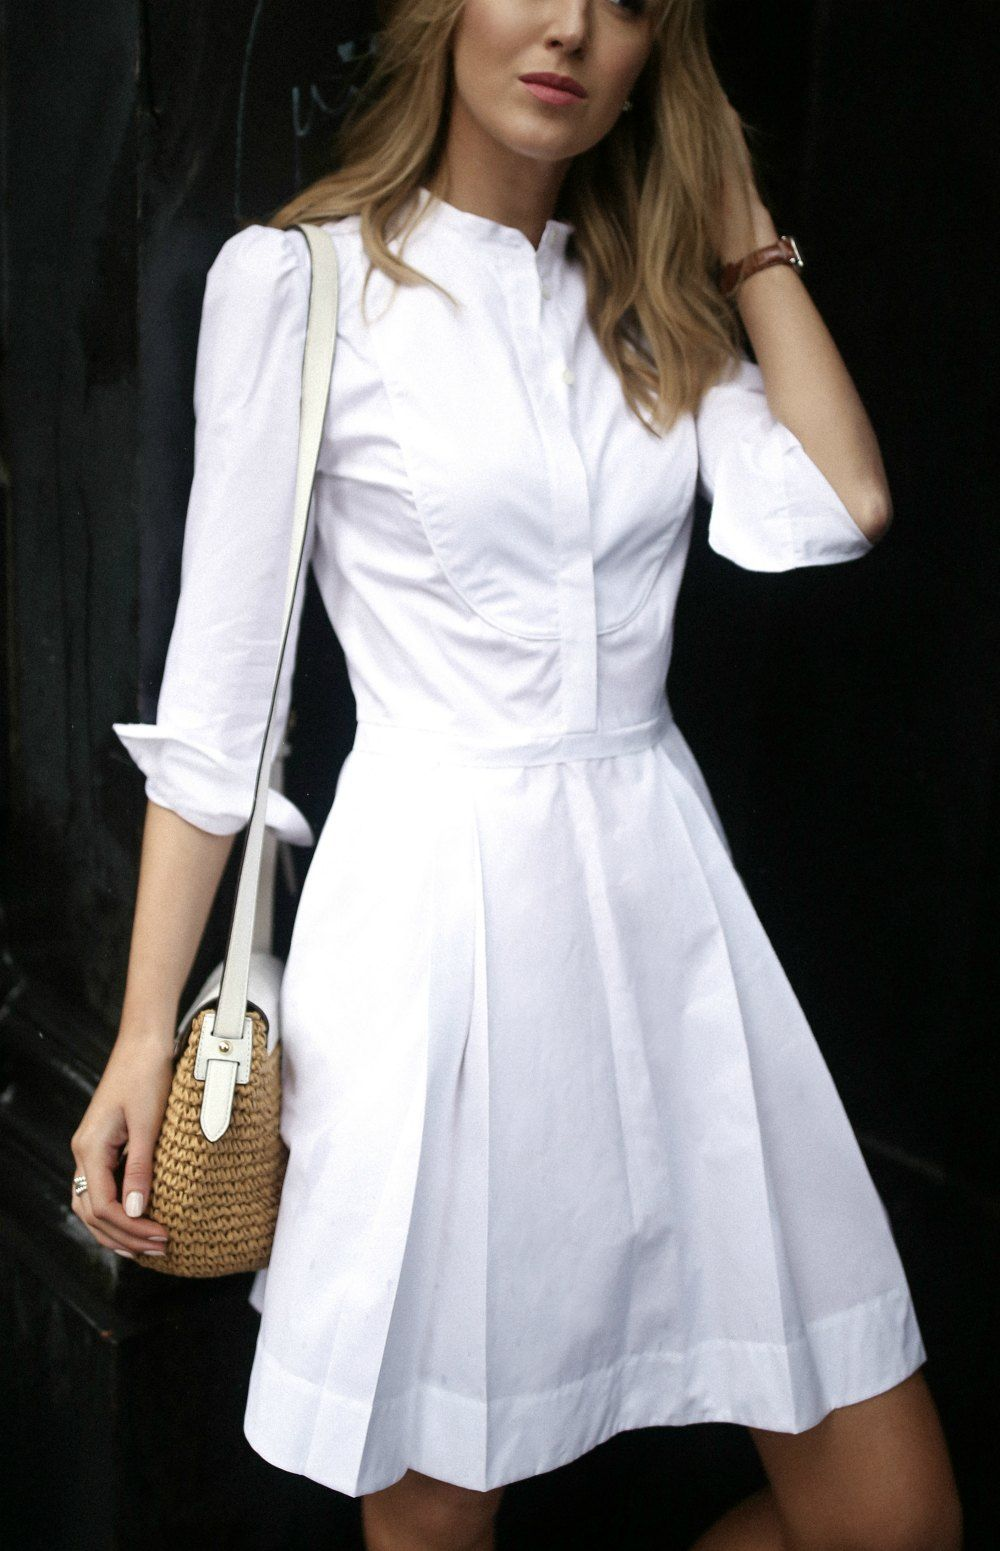 White cotton sheath knee length dress with tuxedo collar and pleats